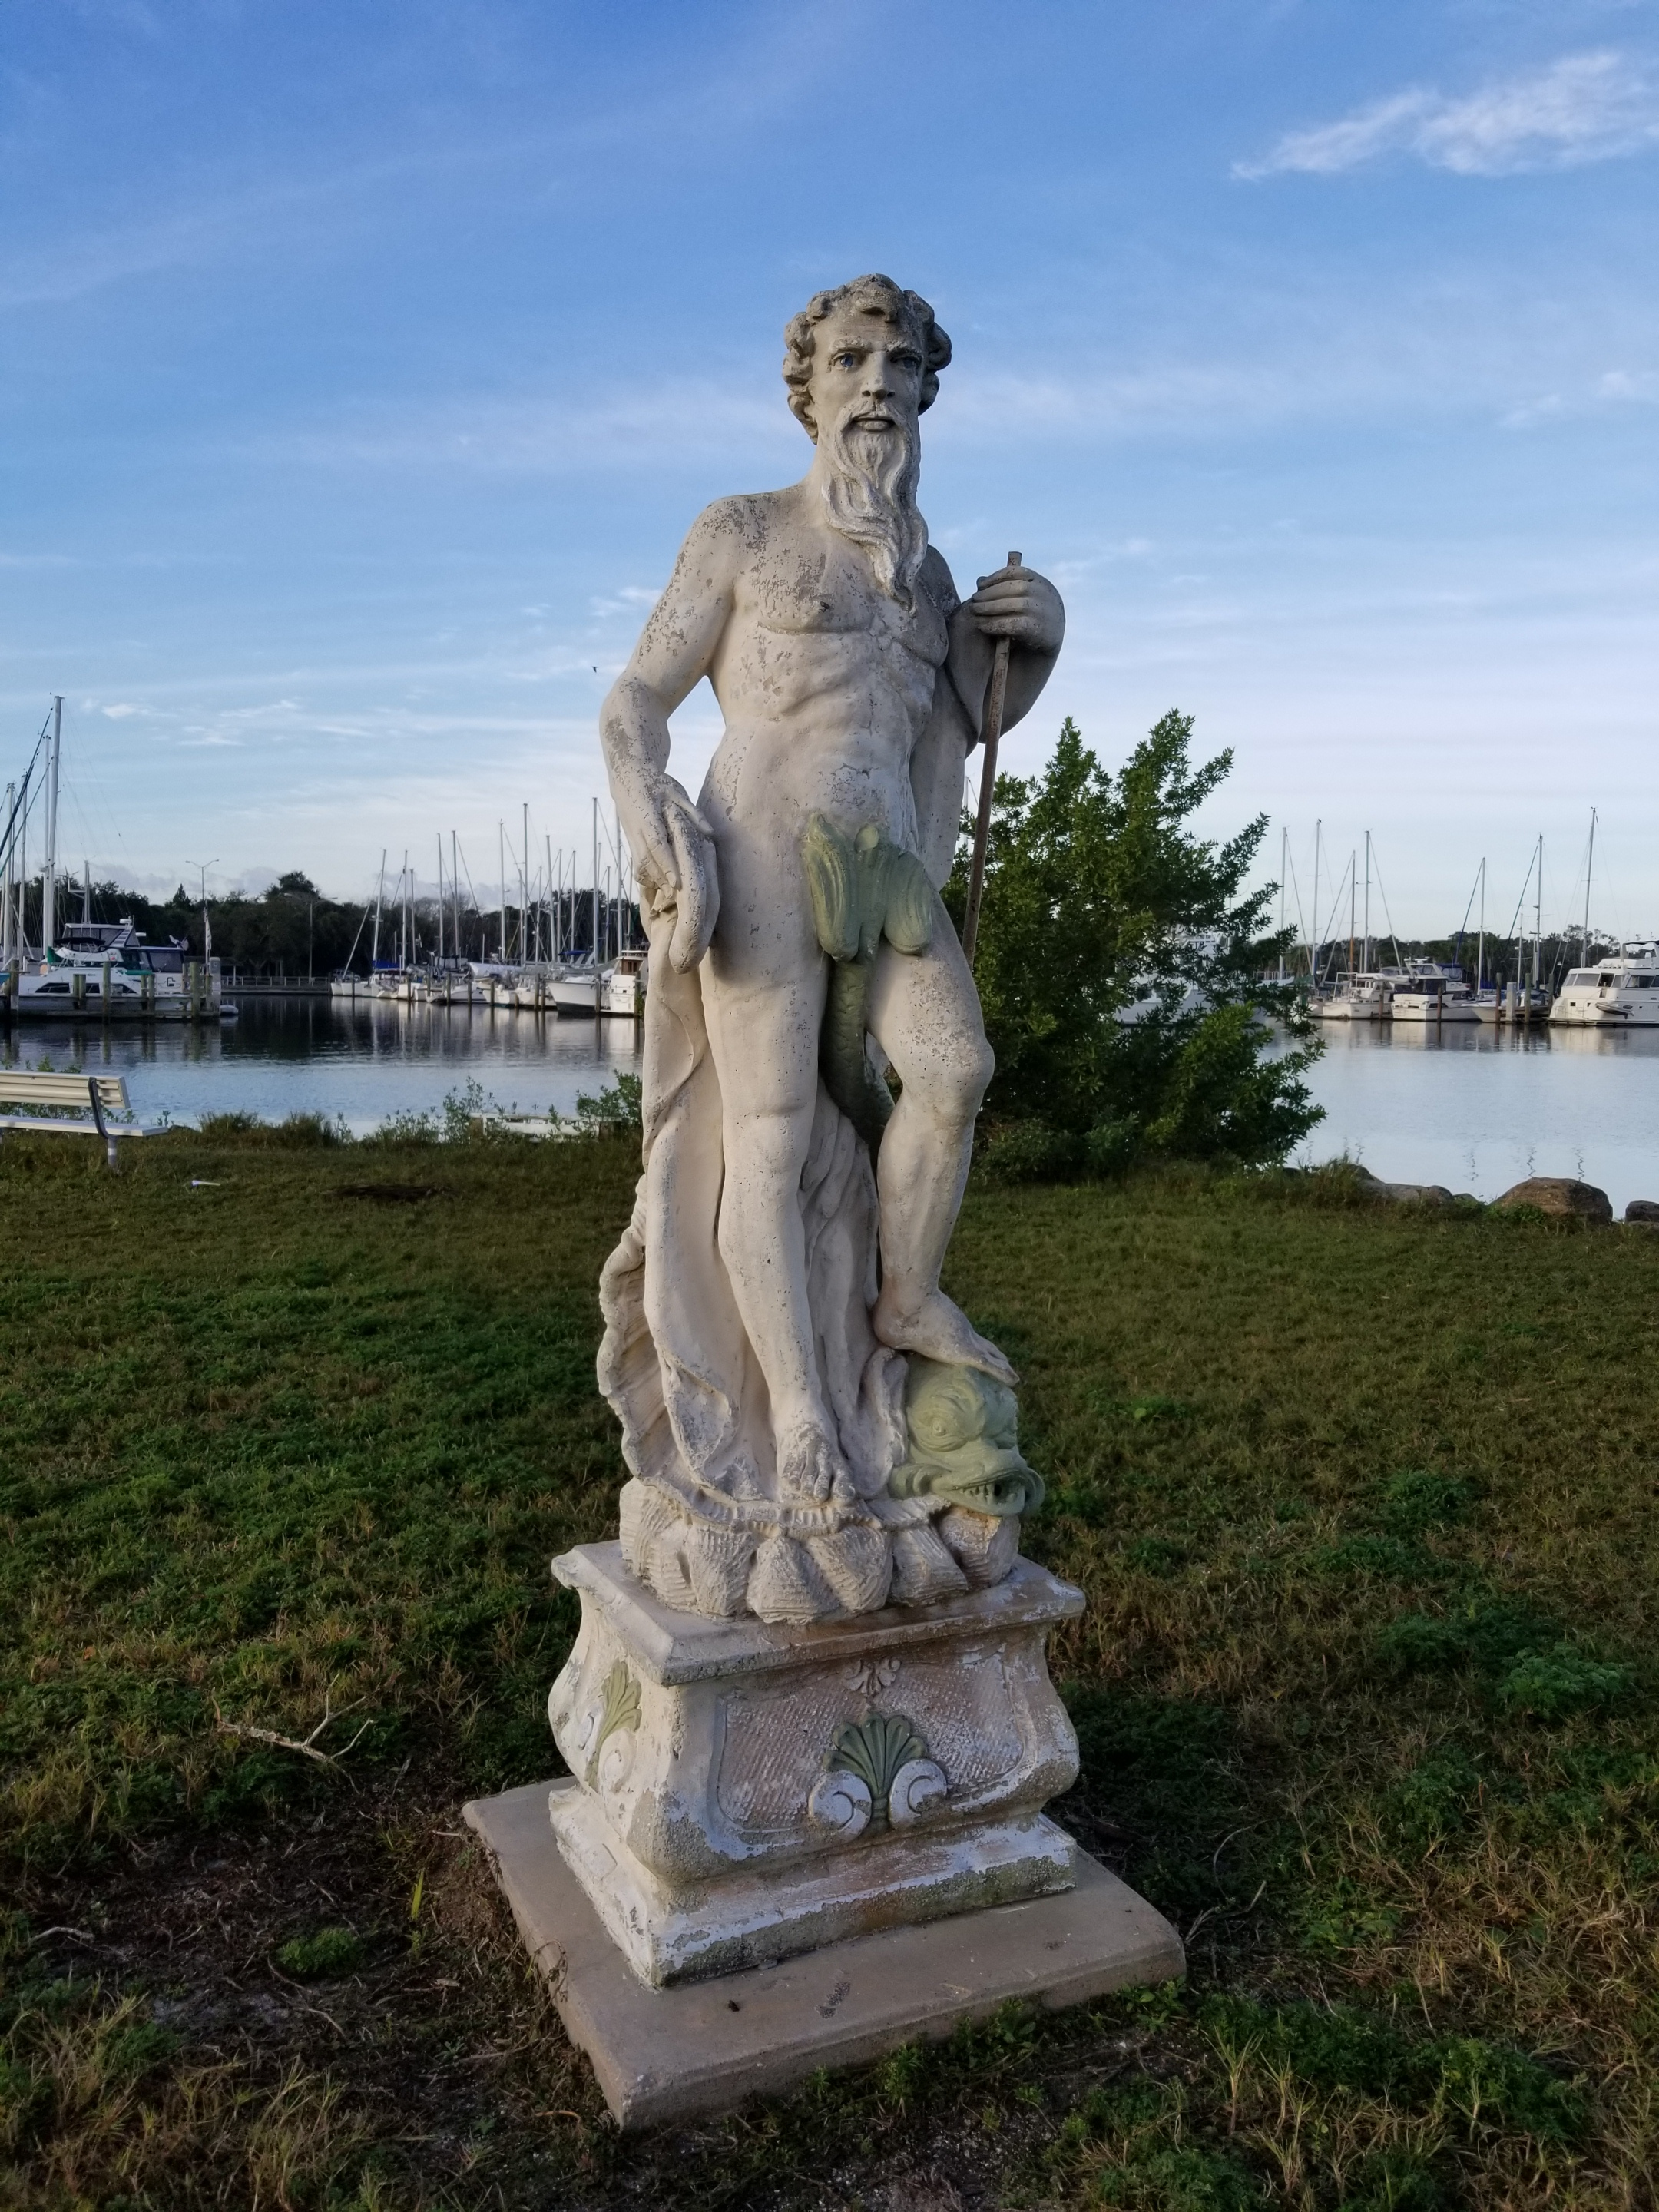 Musings from morning dog walking:  This fellow stands on the point of the southern jetty that protects the marina.  I feel like he's looking right at me (which makes it hard to inspect and figure out what the fish tail is doing attached to his groin…).